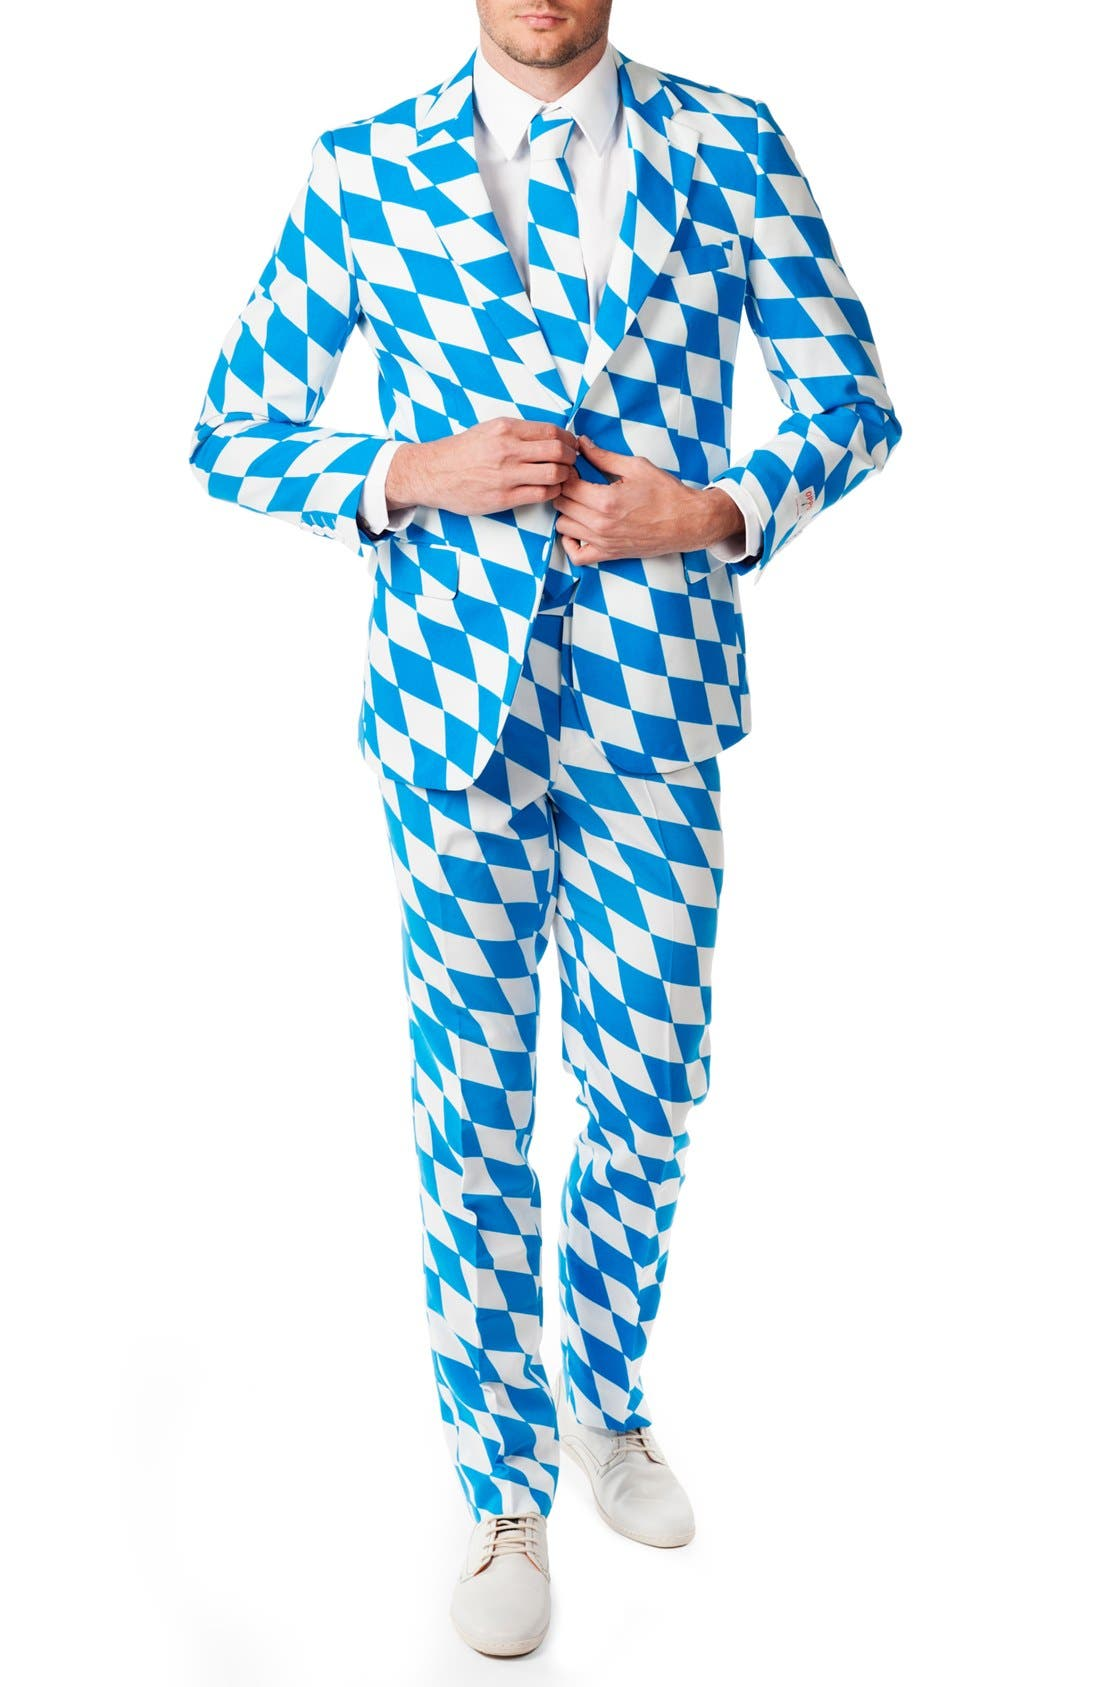 Alternate Image 1 Selected - OppoSuits 'The Bavarian' Trim Fit Suit with Tie